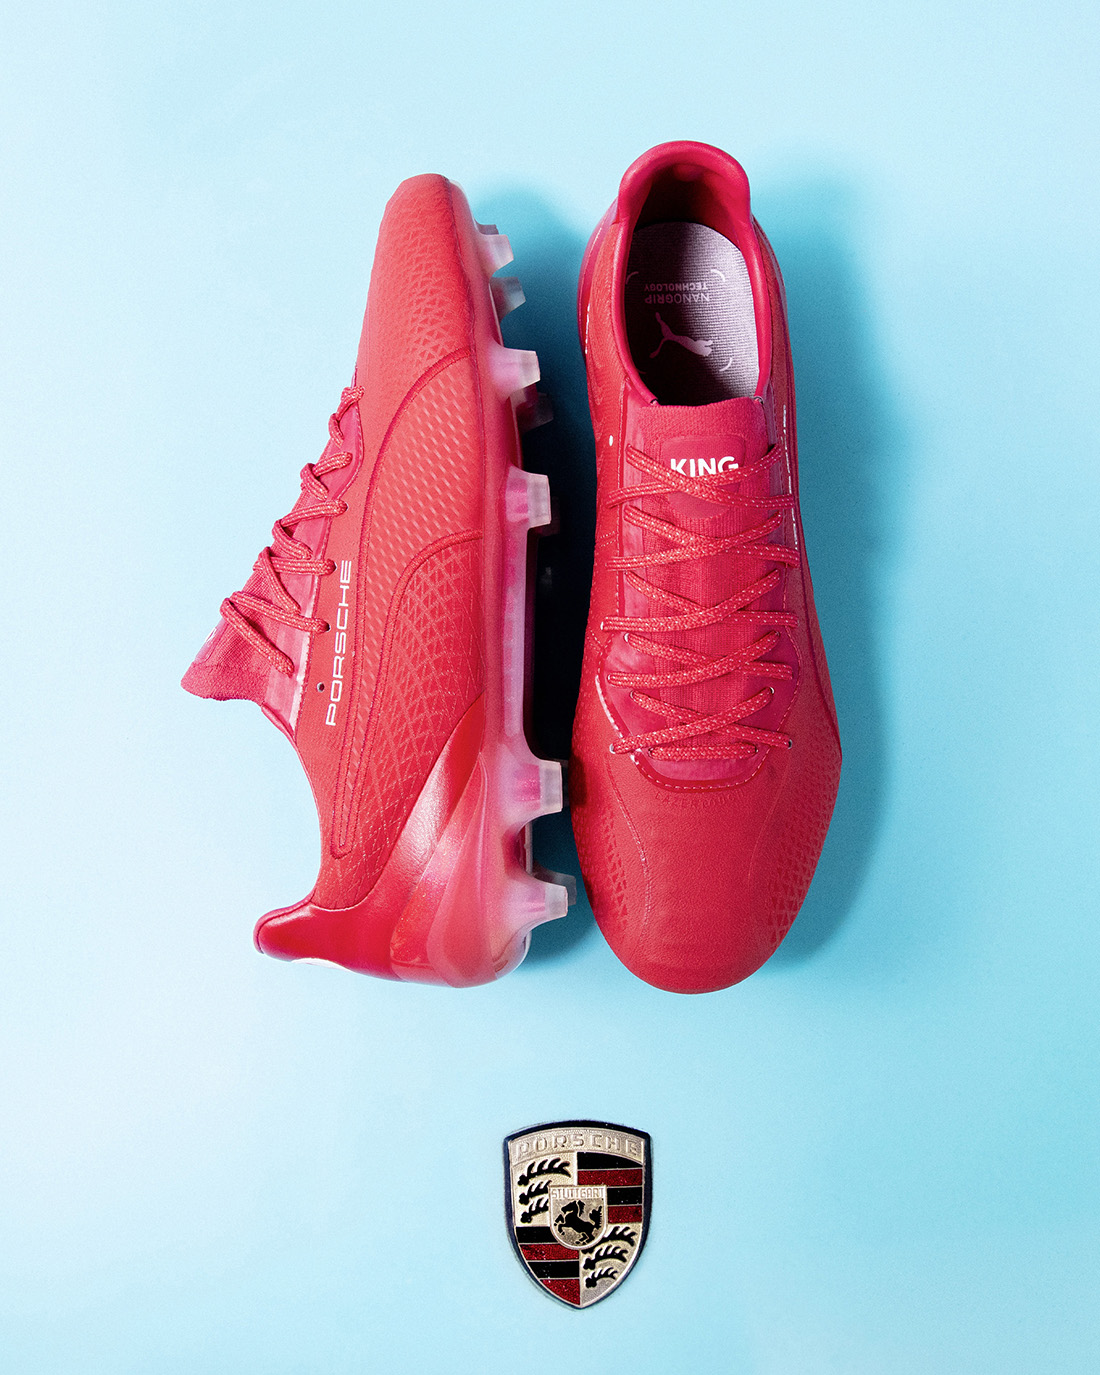 PUMA KING Platinum 911 Legacy